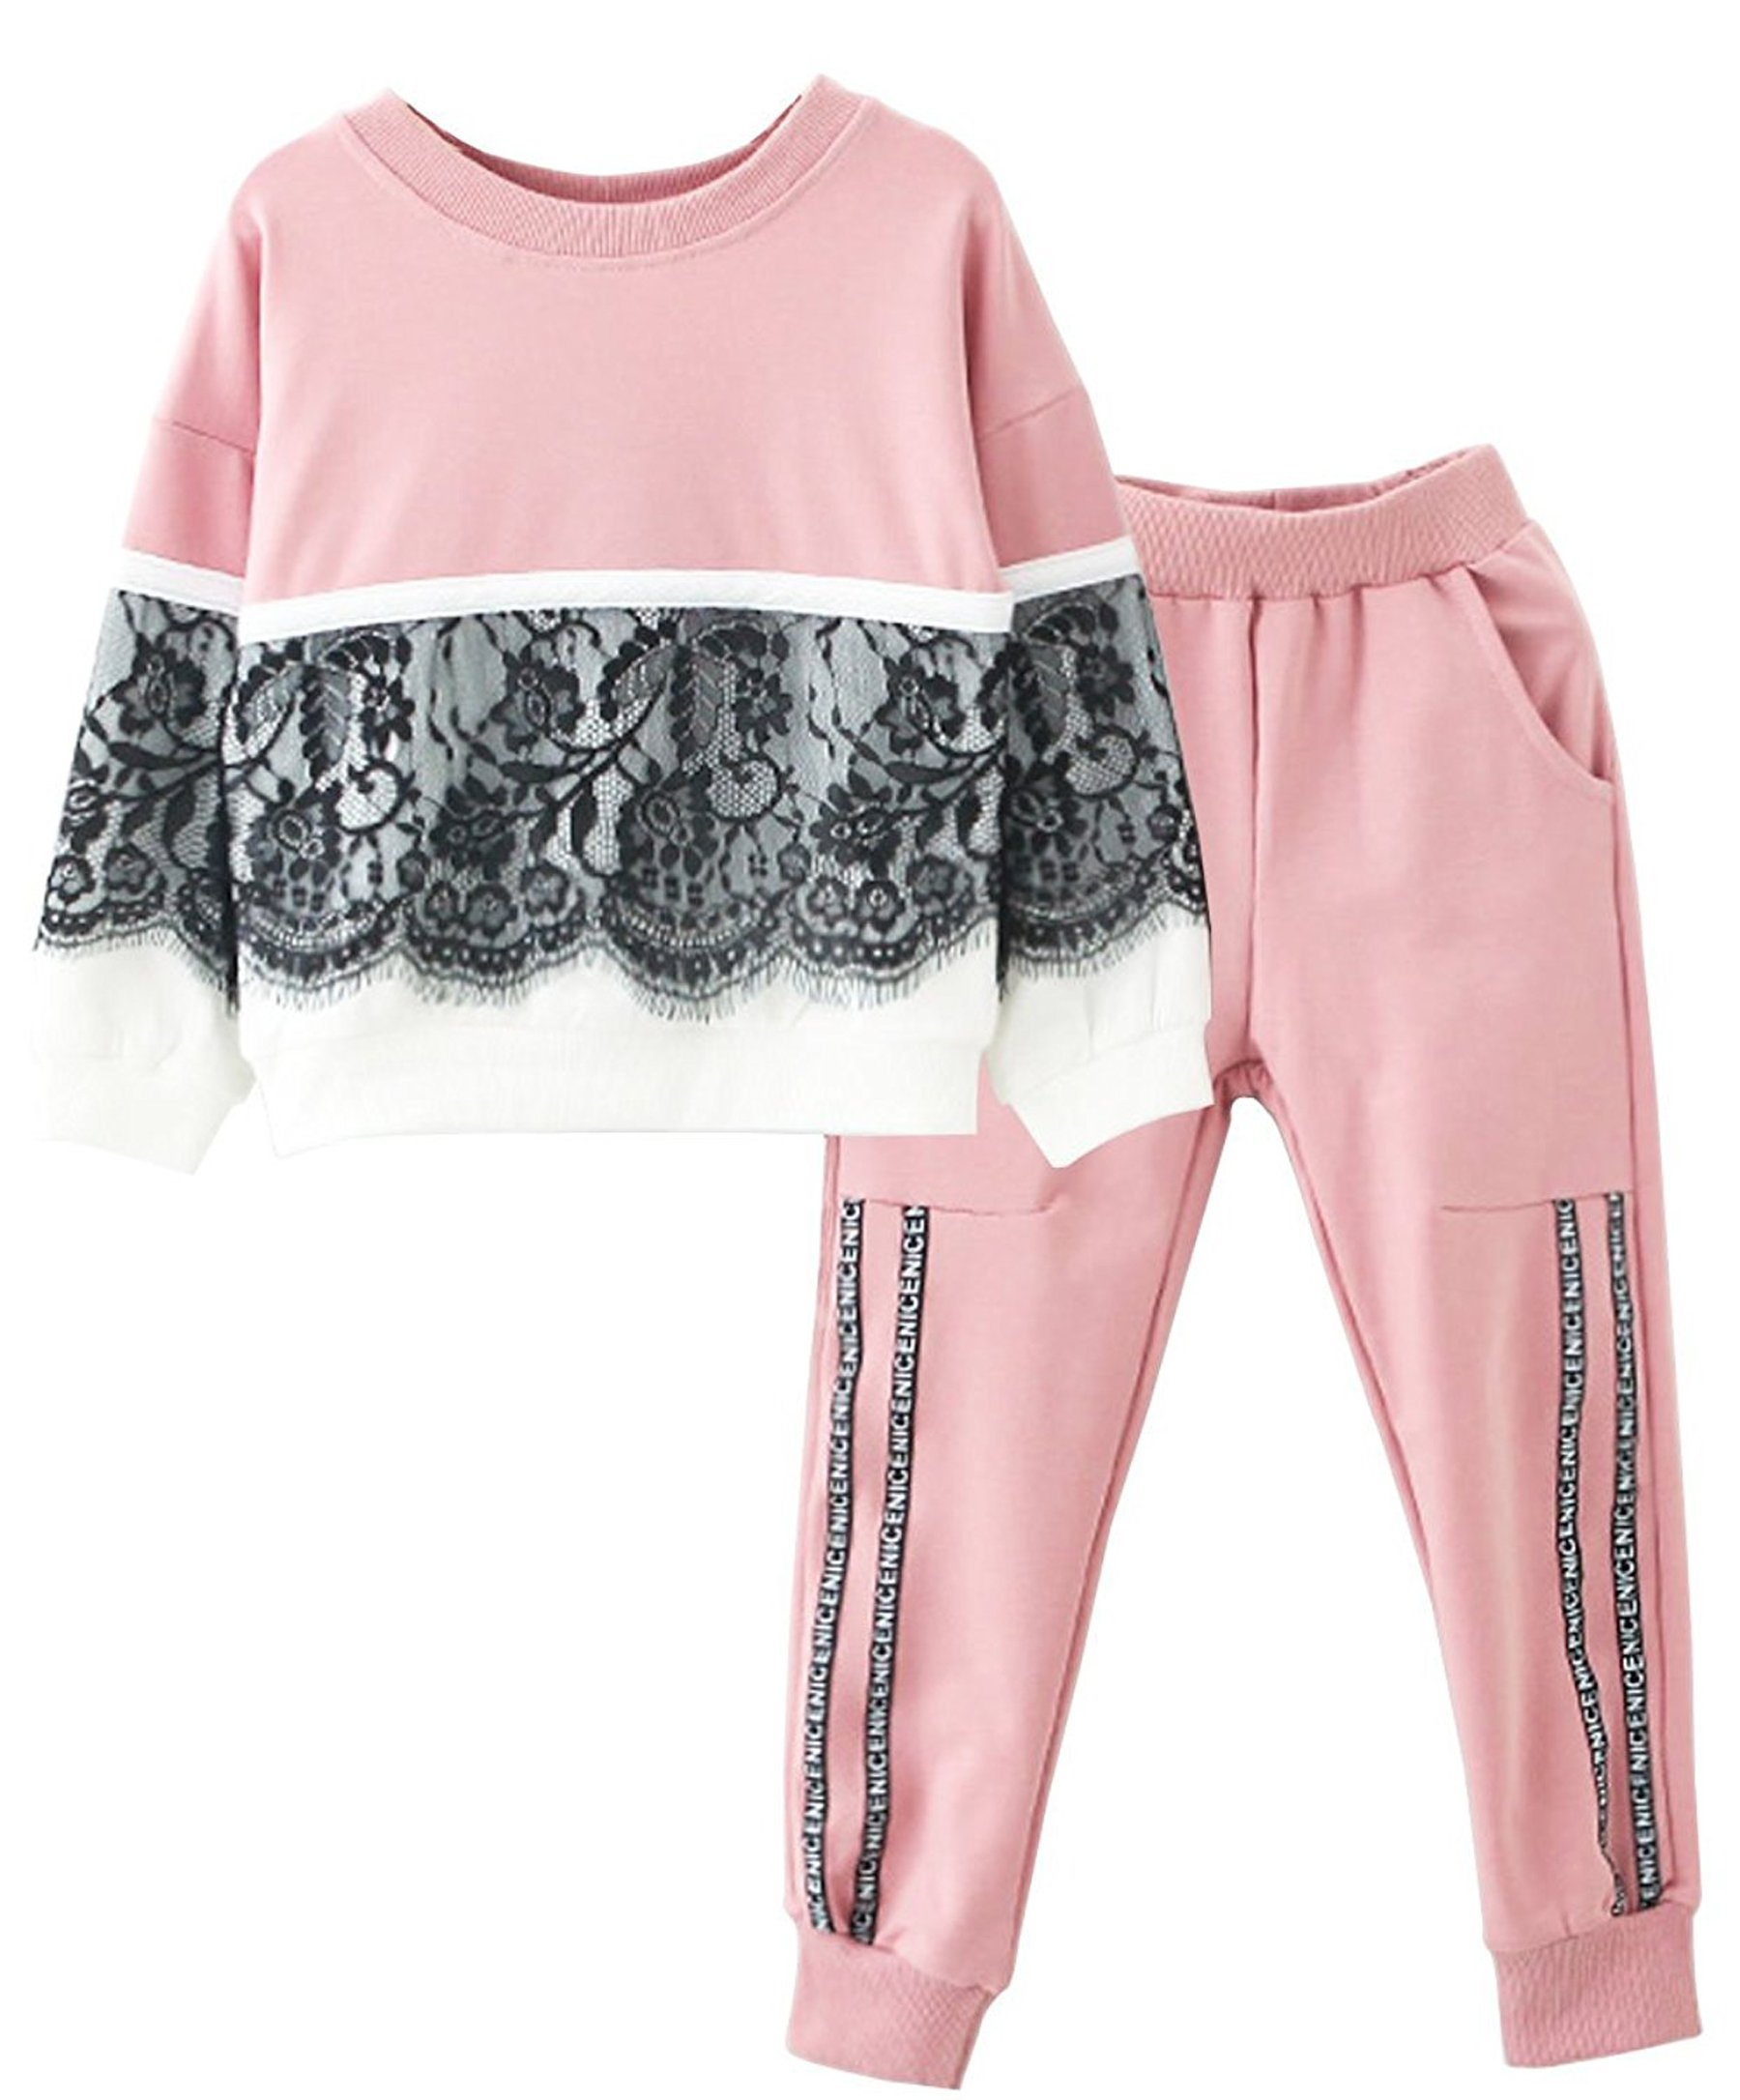 M RACLE Cute Little Girls' 2 Pieces Long Sleeve Top Pants Leggings Clothes Set Outfit (10-11 Years, Pink White) by M RACLE (Image #1)